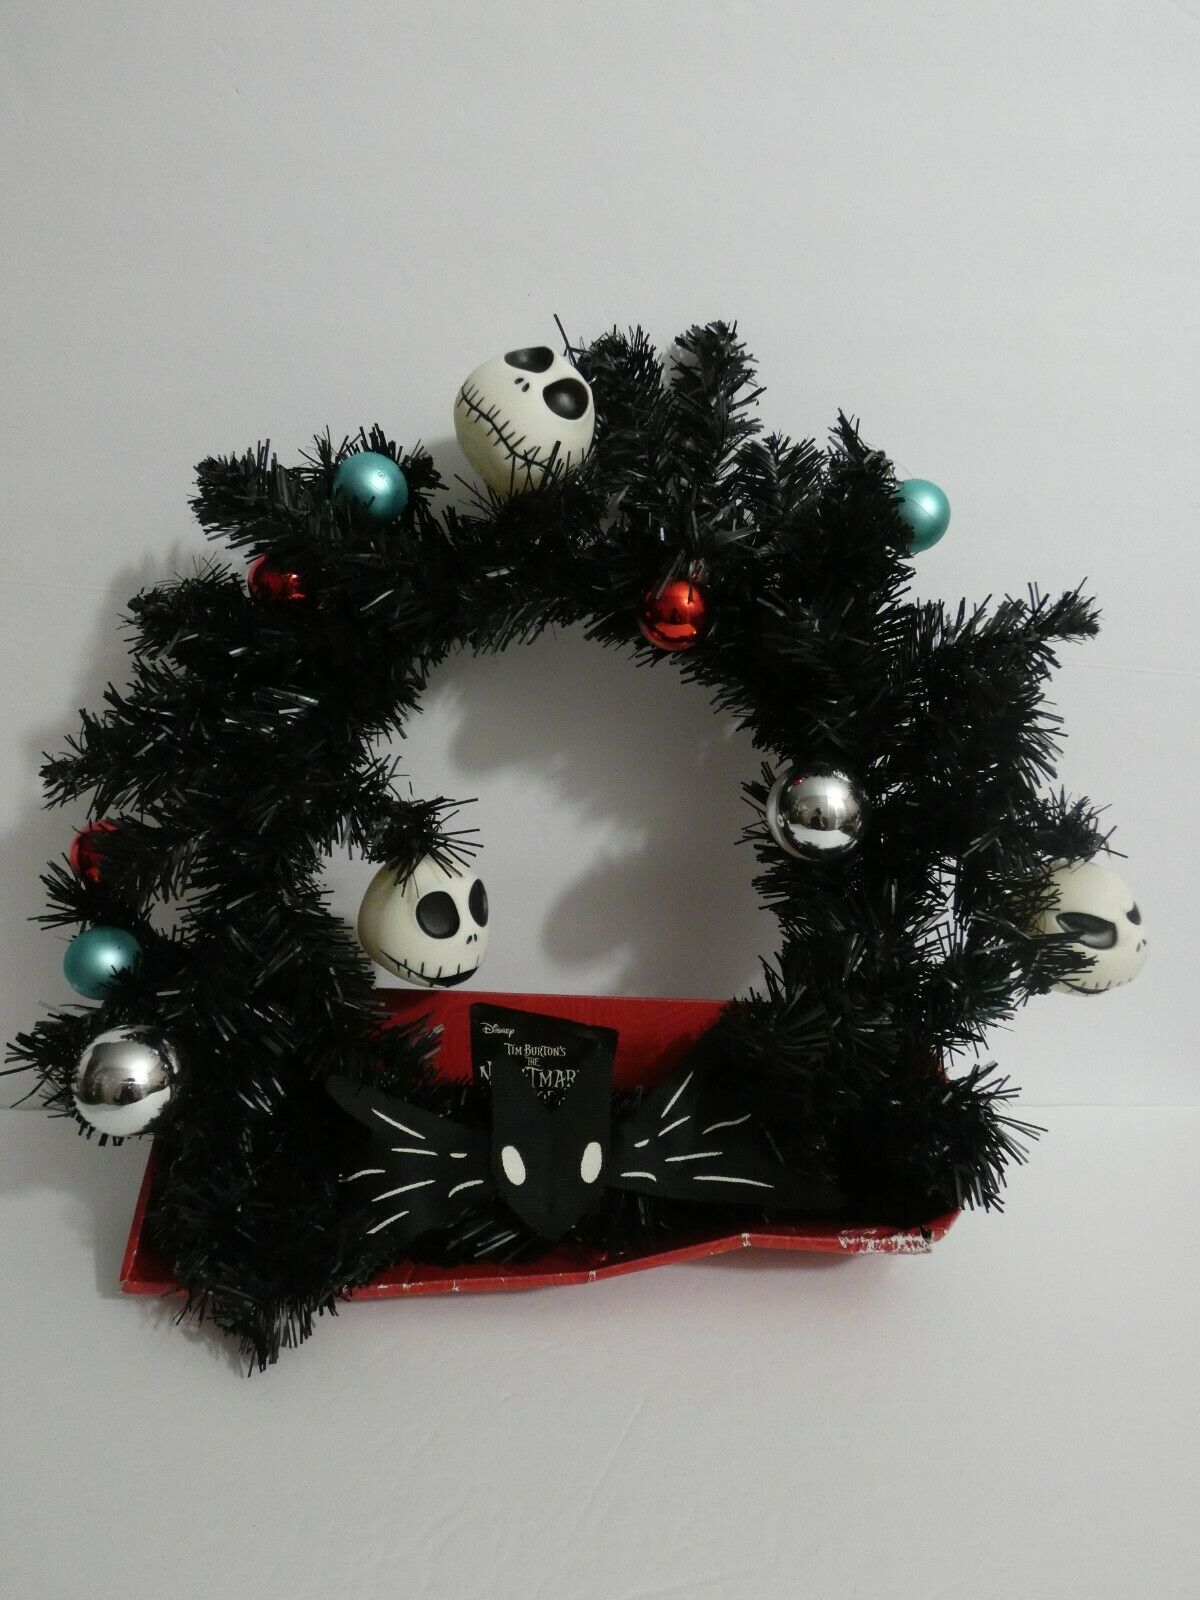 Disney The Nightmare Before Christmas Wreath Jack Skellington 2017 Edition For Sale Online Ebay